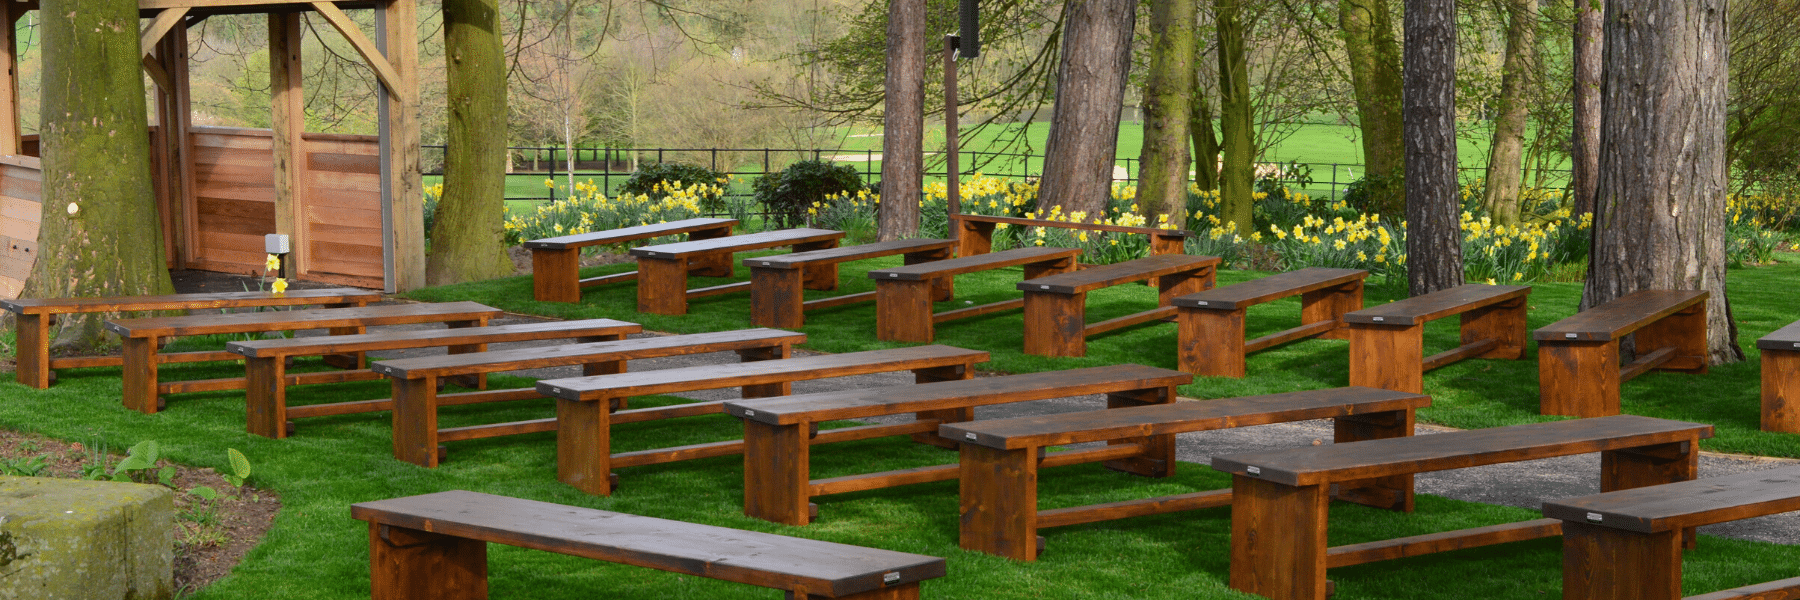 <p>Bespoke Furniture – Wedding Benches for a Woodland Wedding</p>